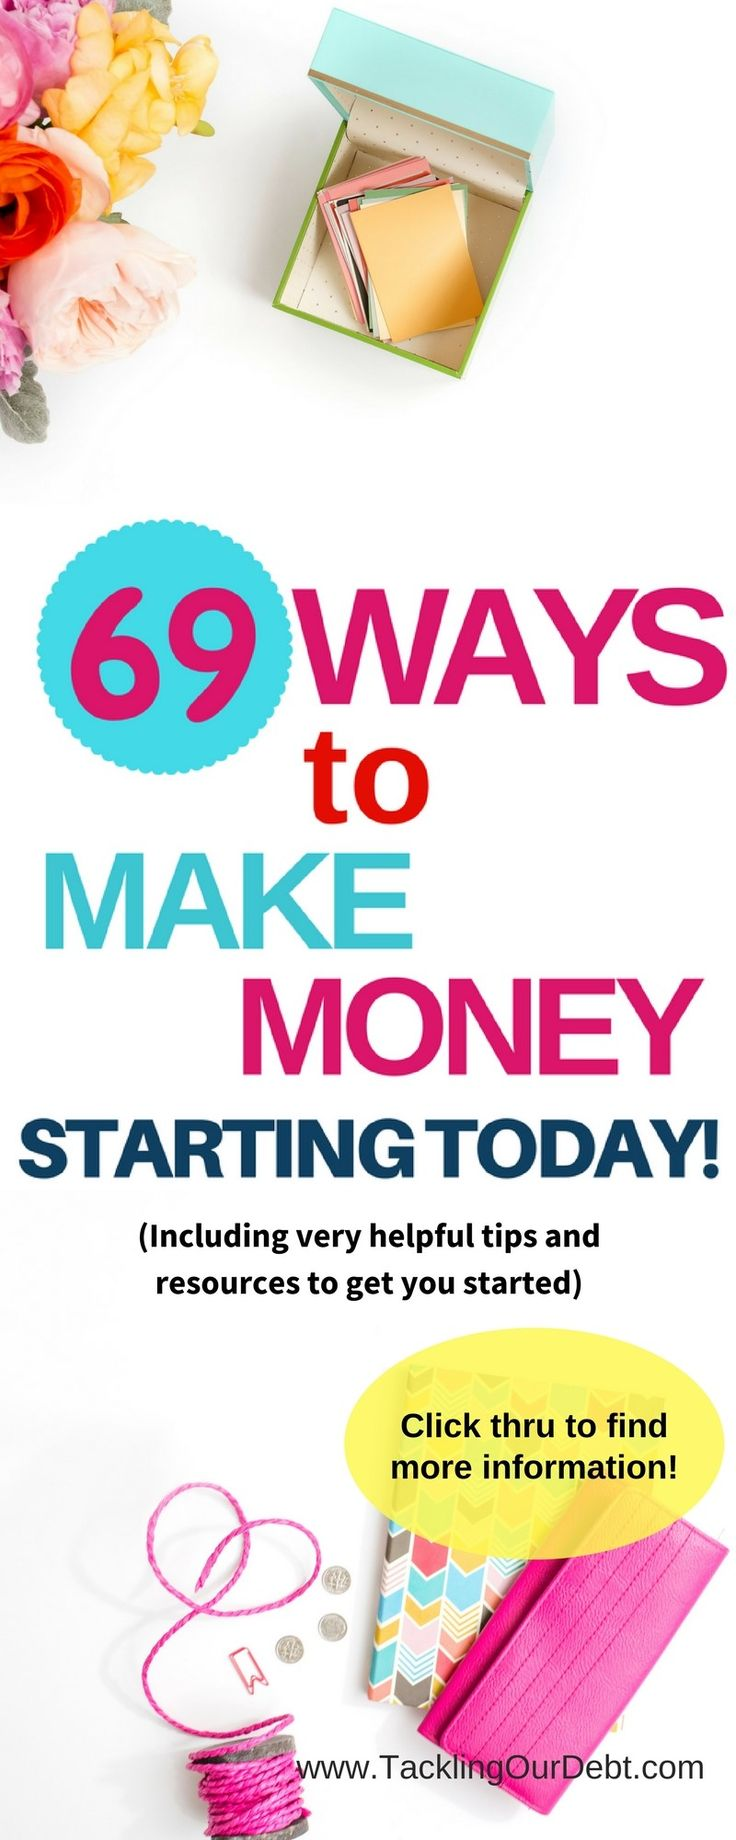 Ways to Make Money! Need to find new ways to earn money? Here are 69 ideas on how to make money. And the best part is that you can get started today, and make money based on your flexible schedule. Plus, you will find very helpful tips and resources to get you started making money. Click thru to learn more!